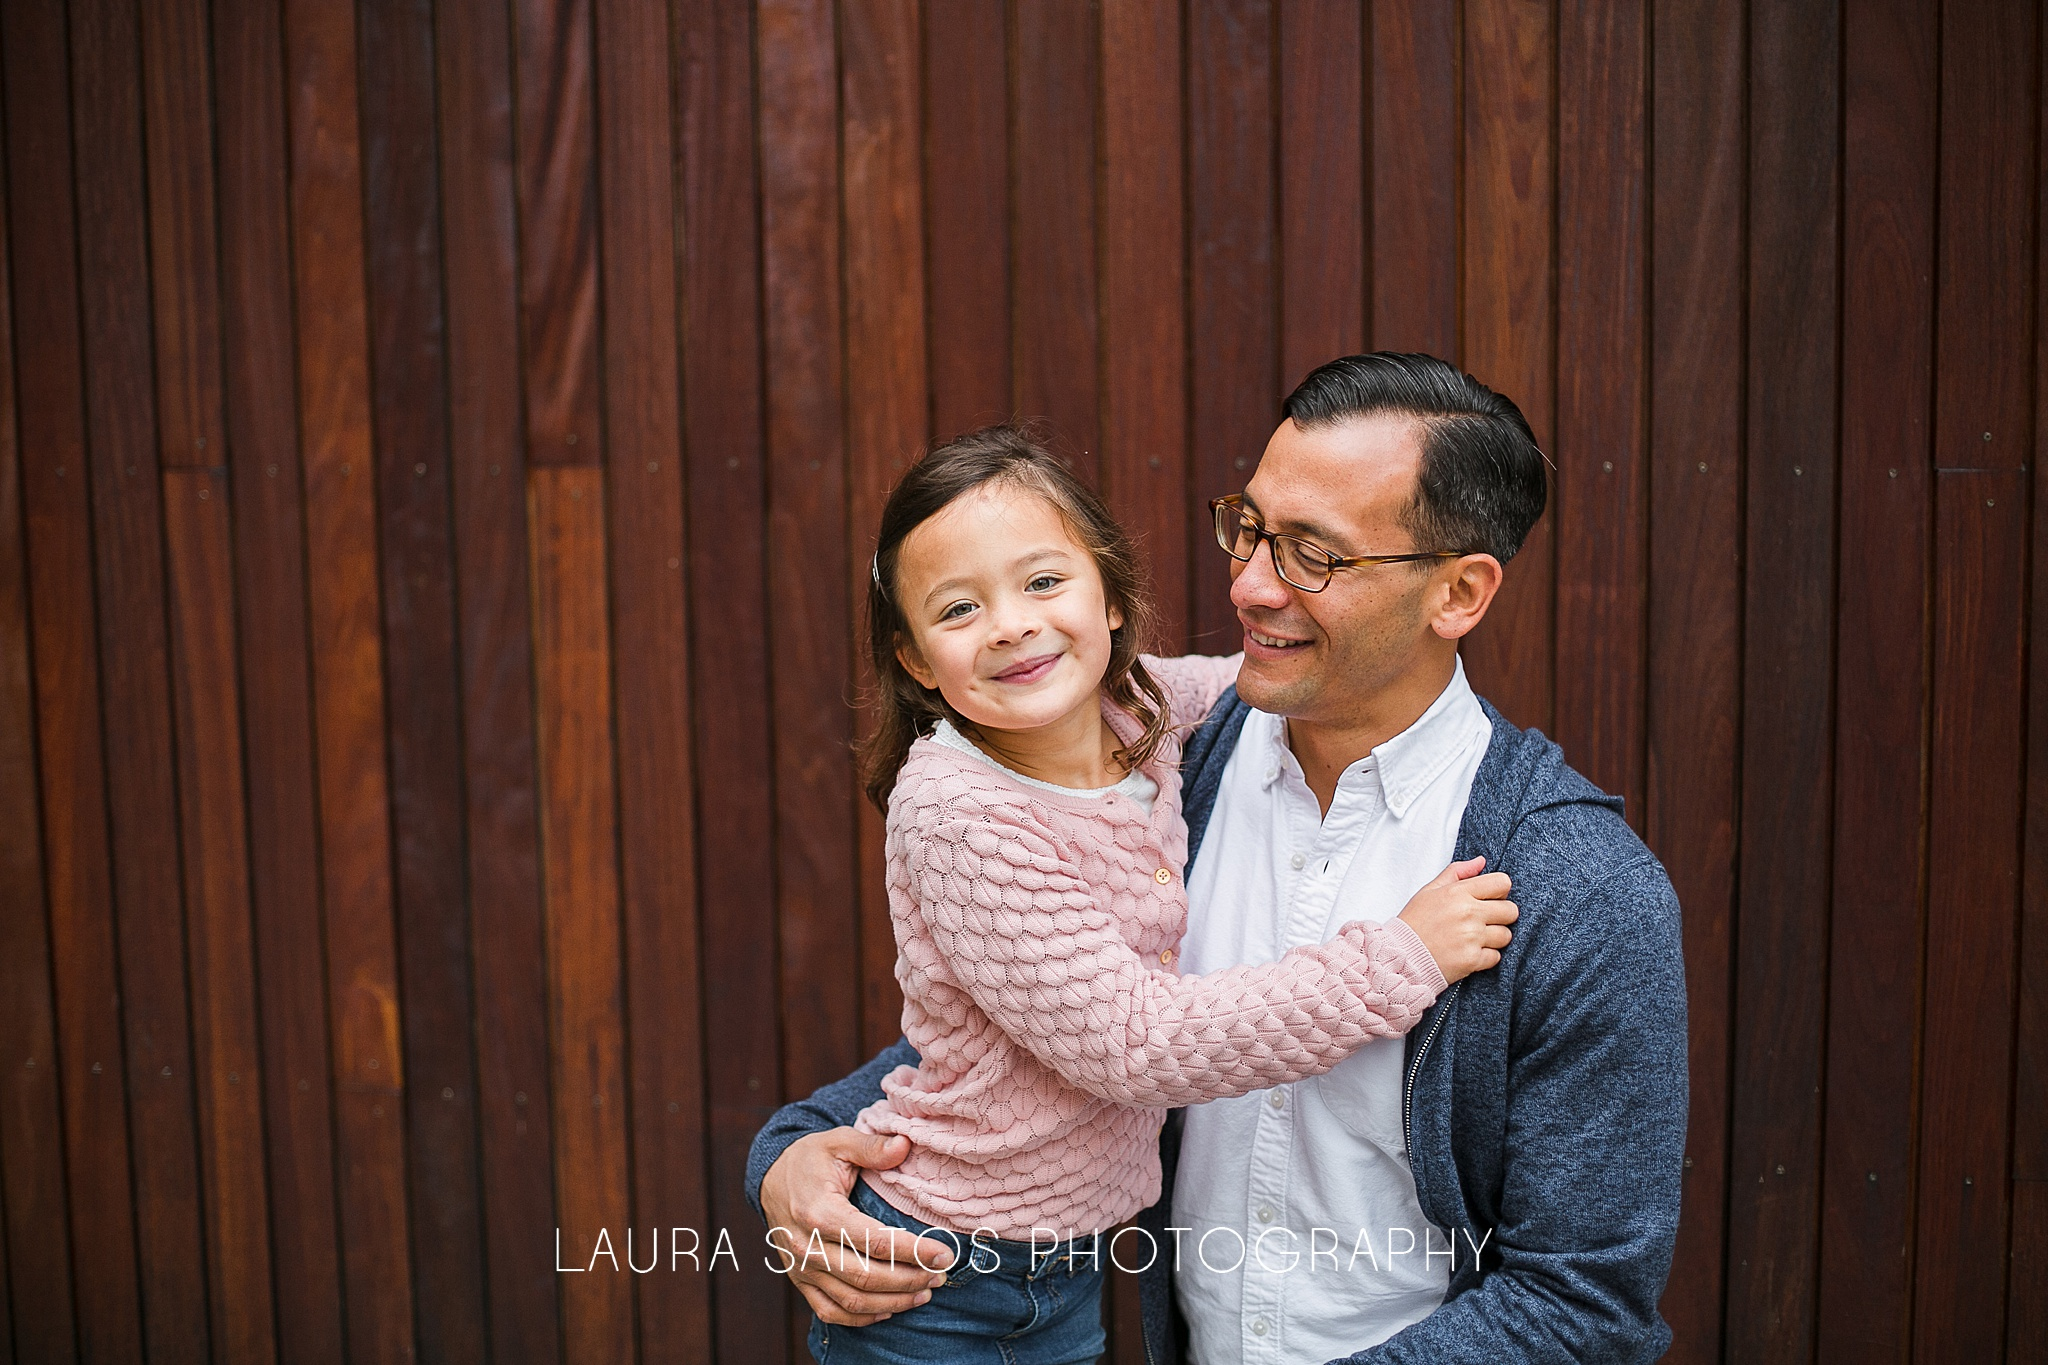 Laura Santos Photography Portland Oregon Family Photographer_0886.jpg